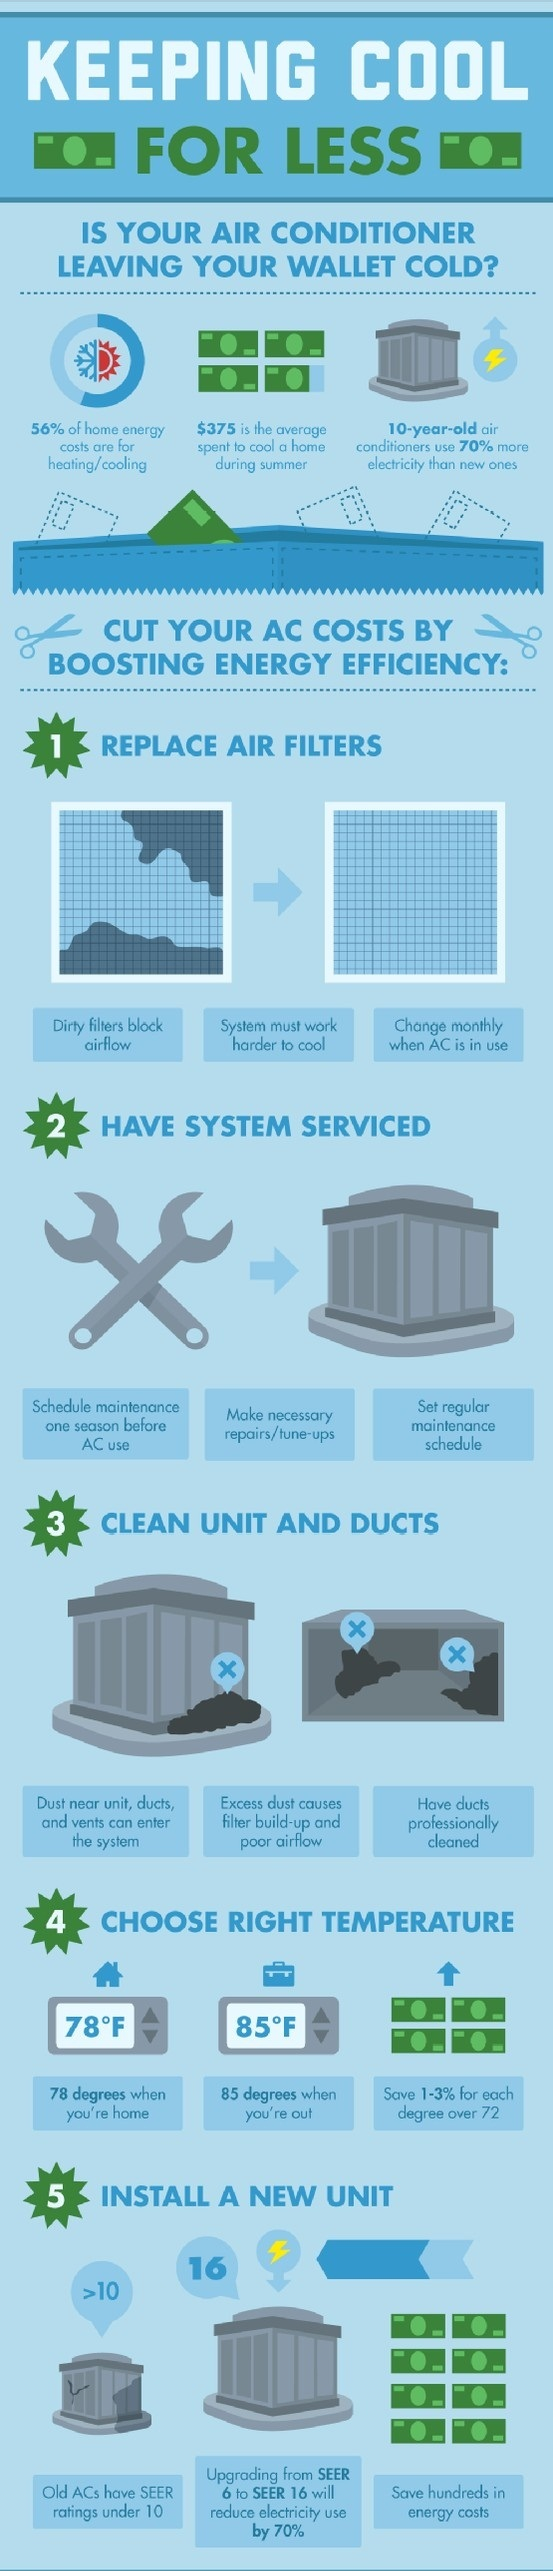 Air conditioner installation and HVAC Services by